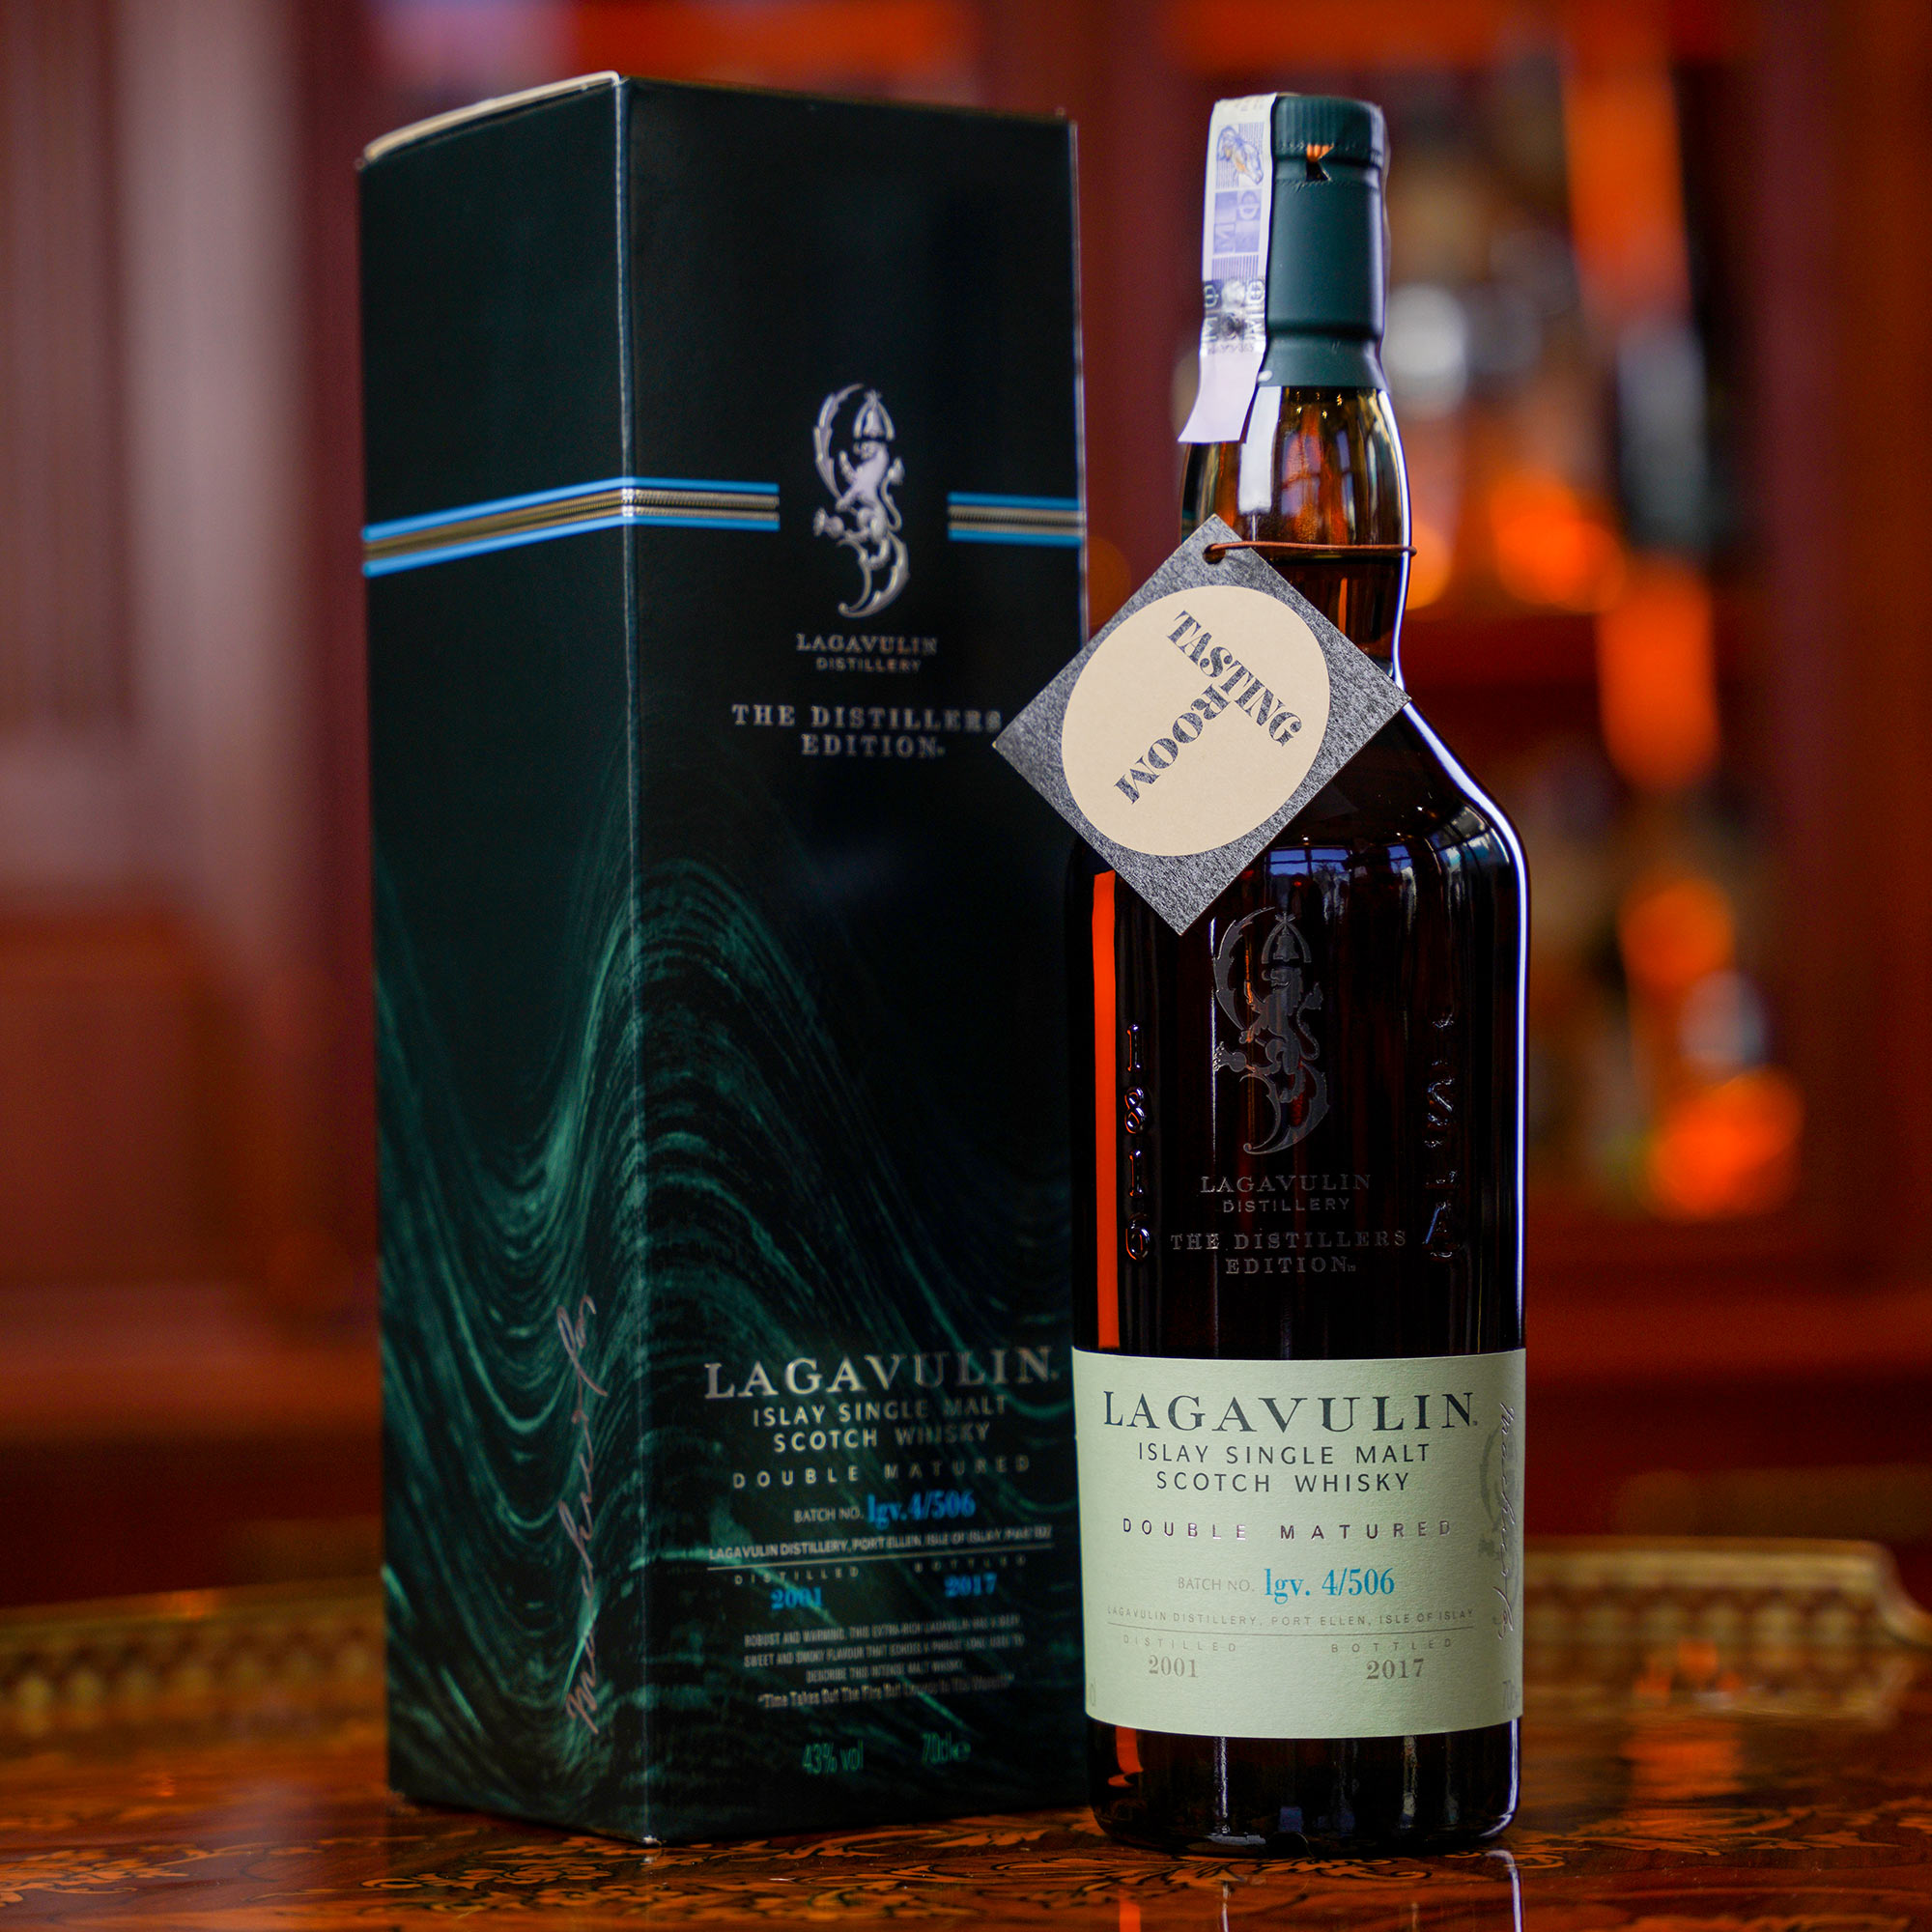 Lagavulin Distillers Edition 2017 /Лагавулин Дистилърс Едишън 2017